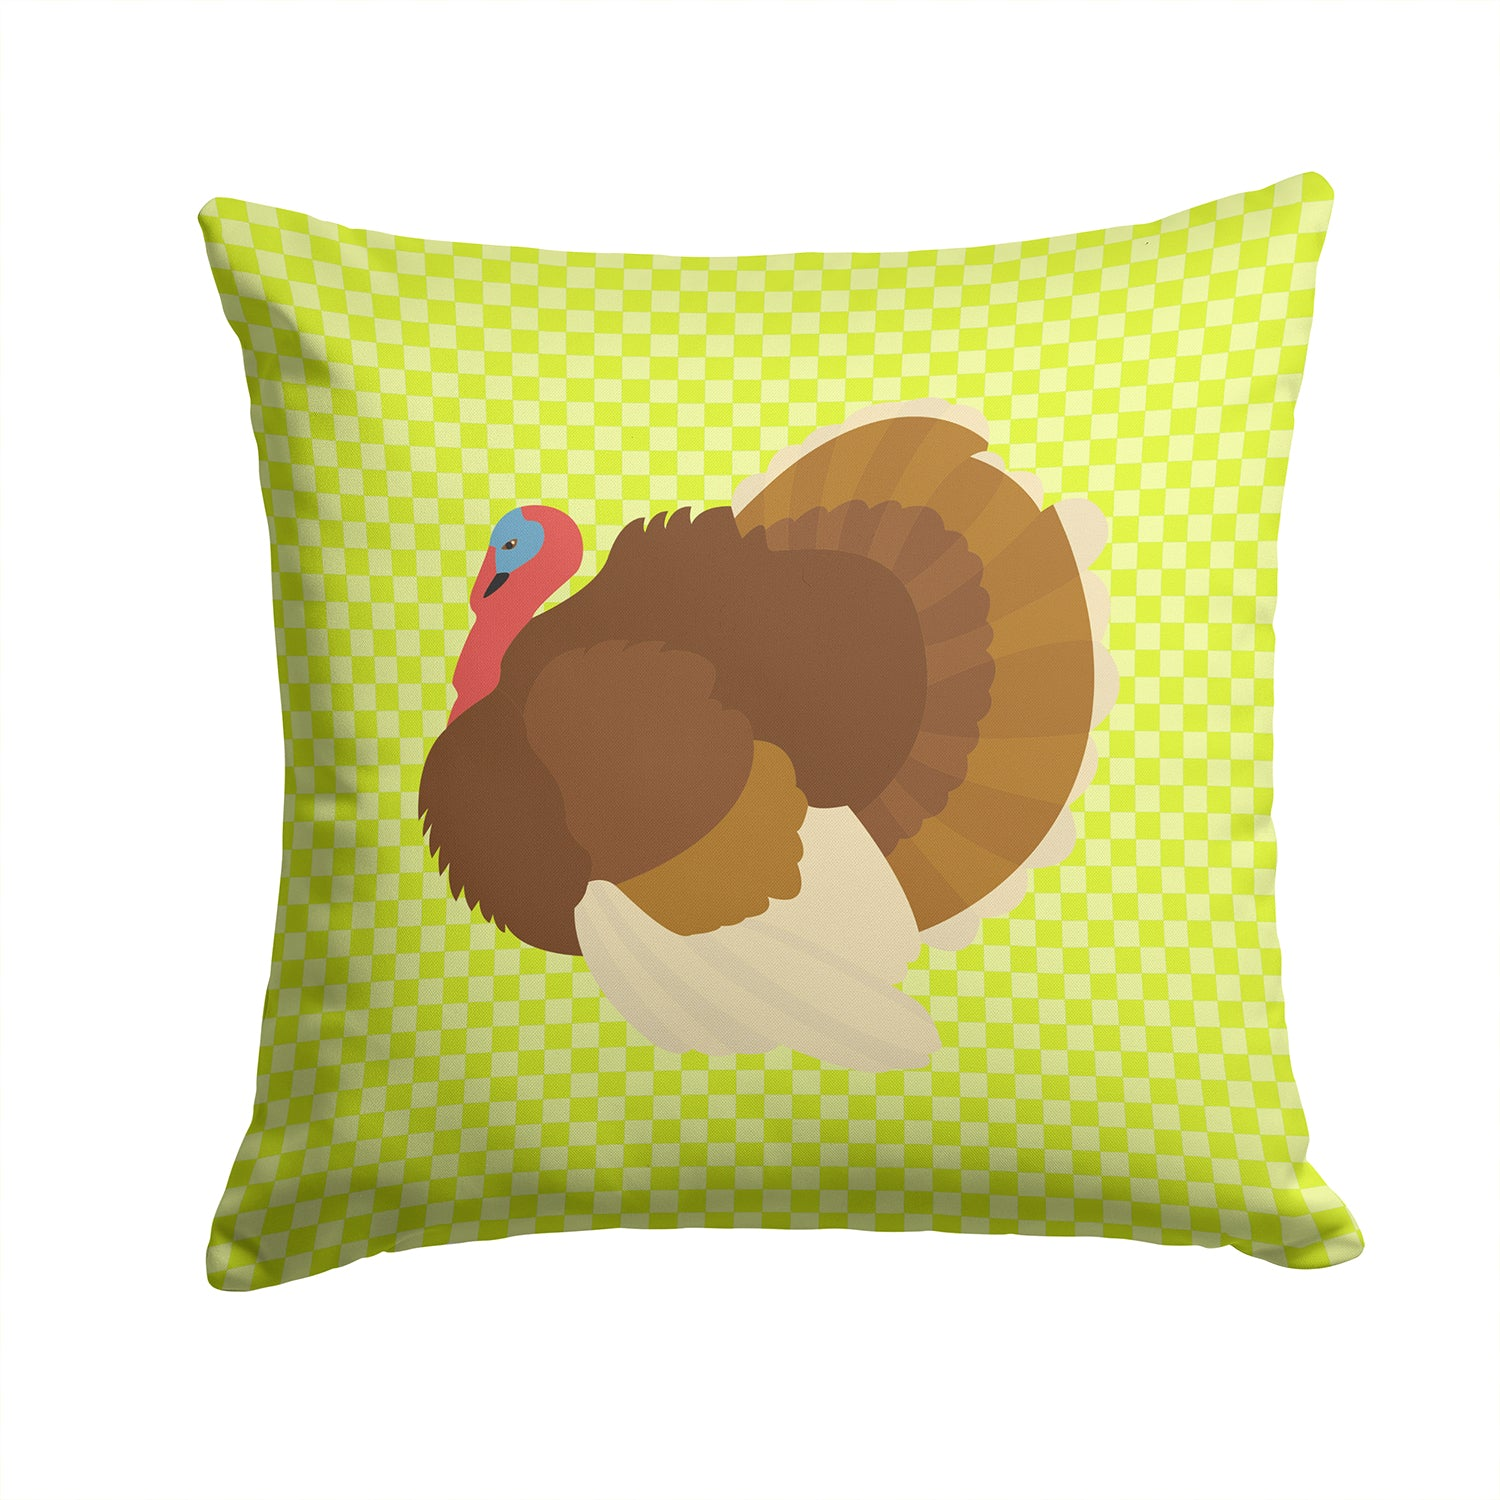 French Turkey Dindon Green Fabric Decorative Pillow BB7816PW1414 by Caroline's Treasures